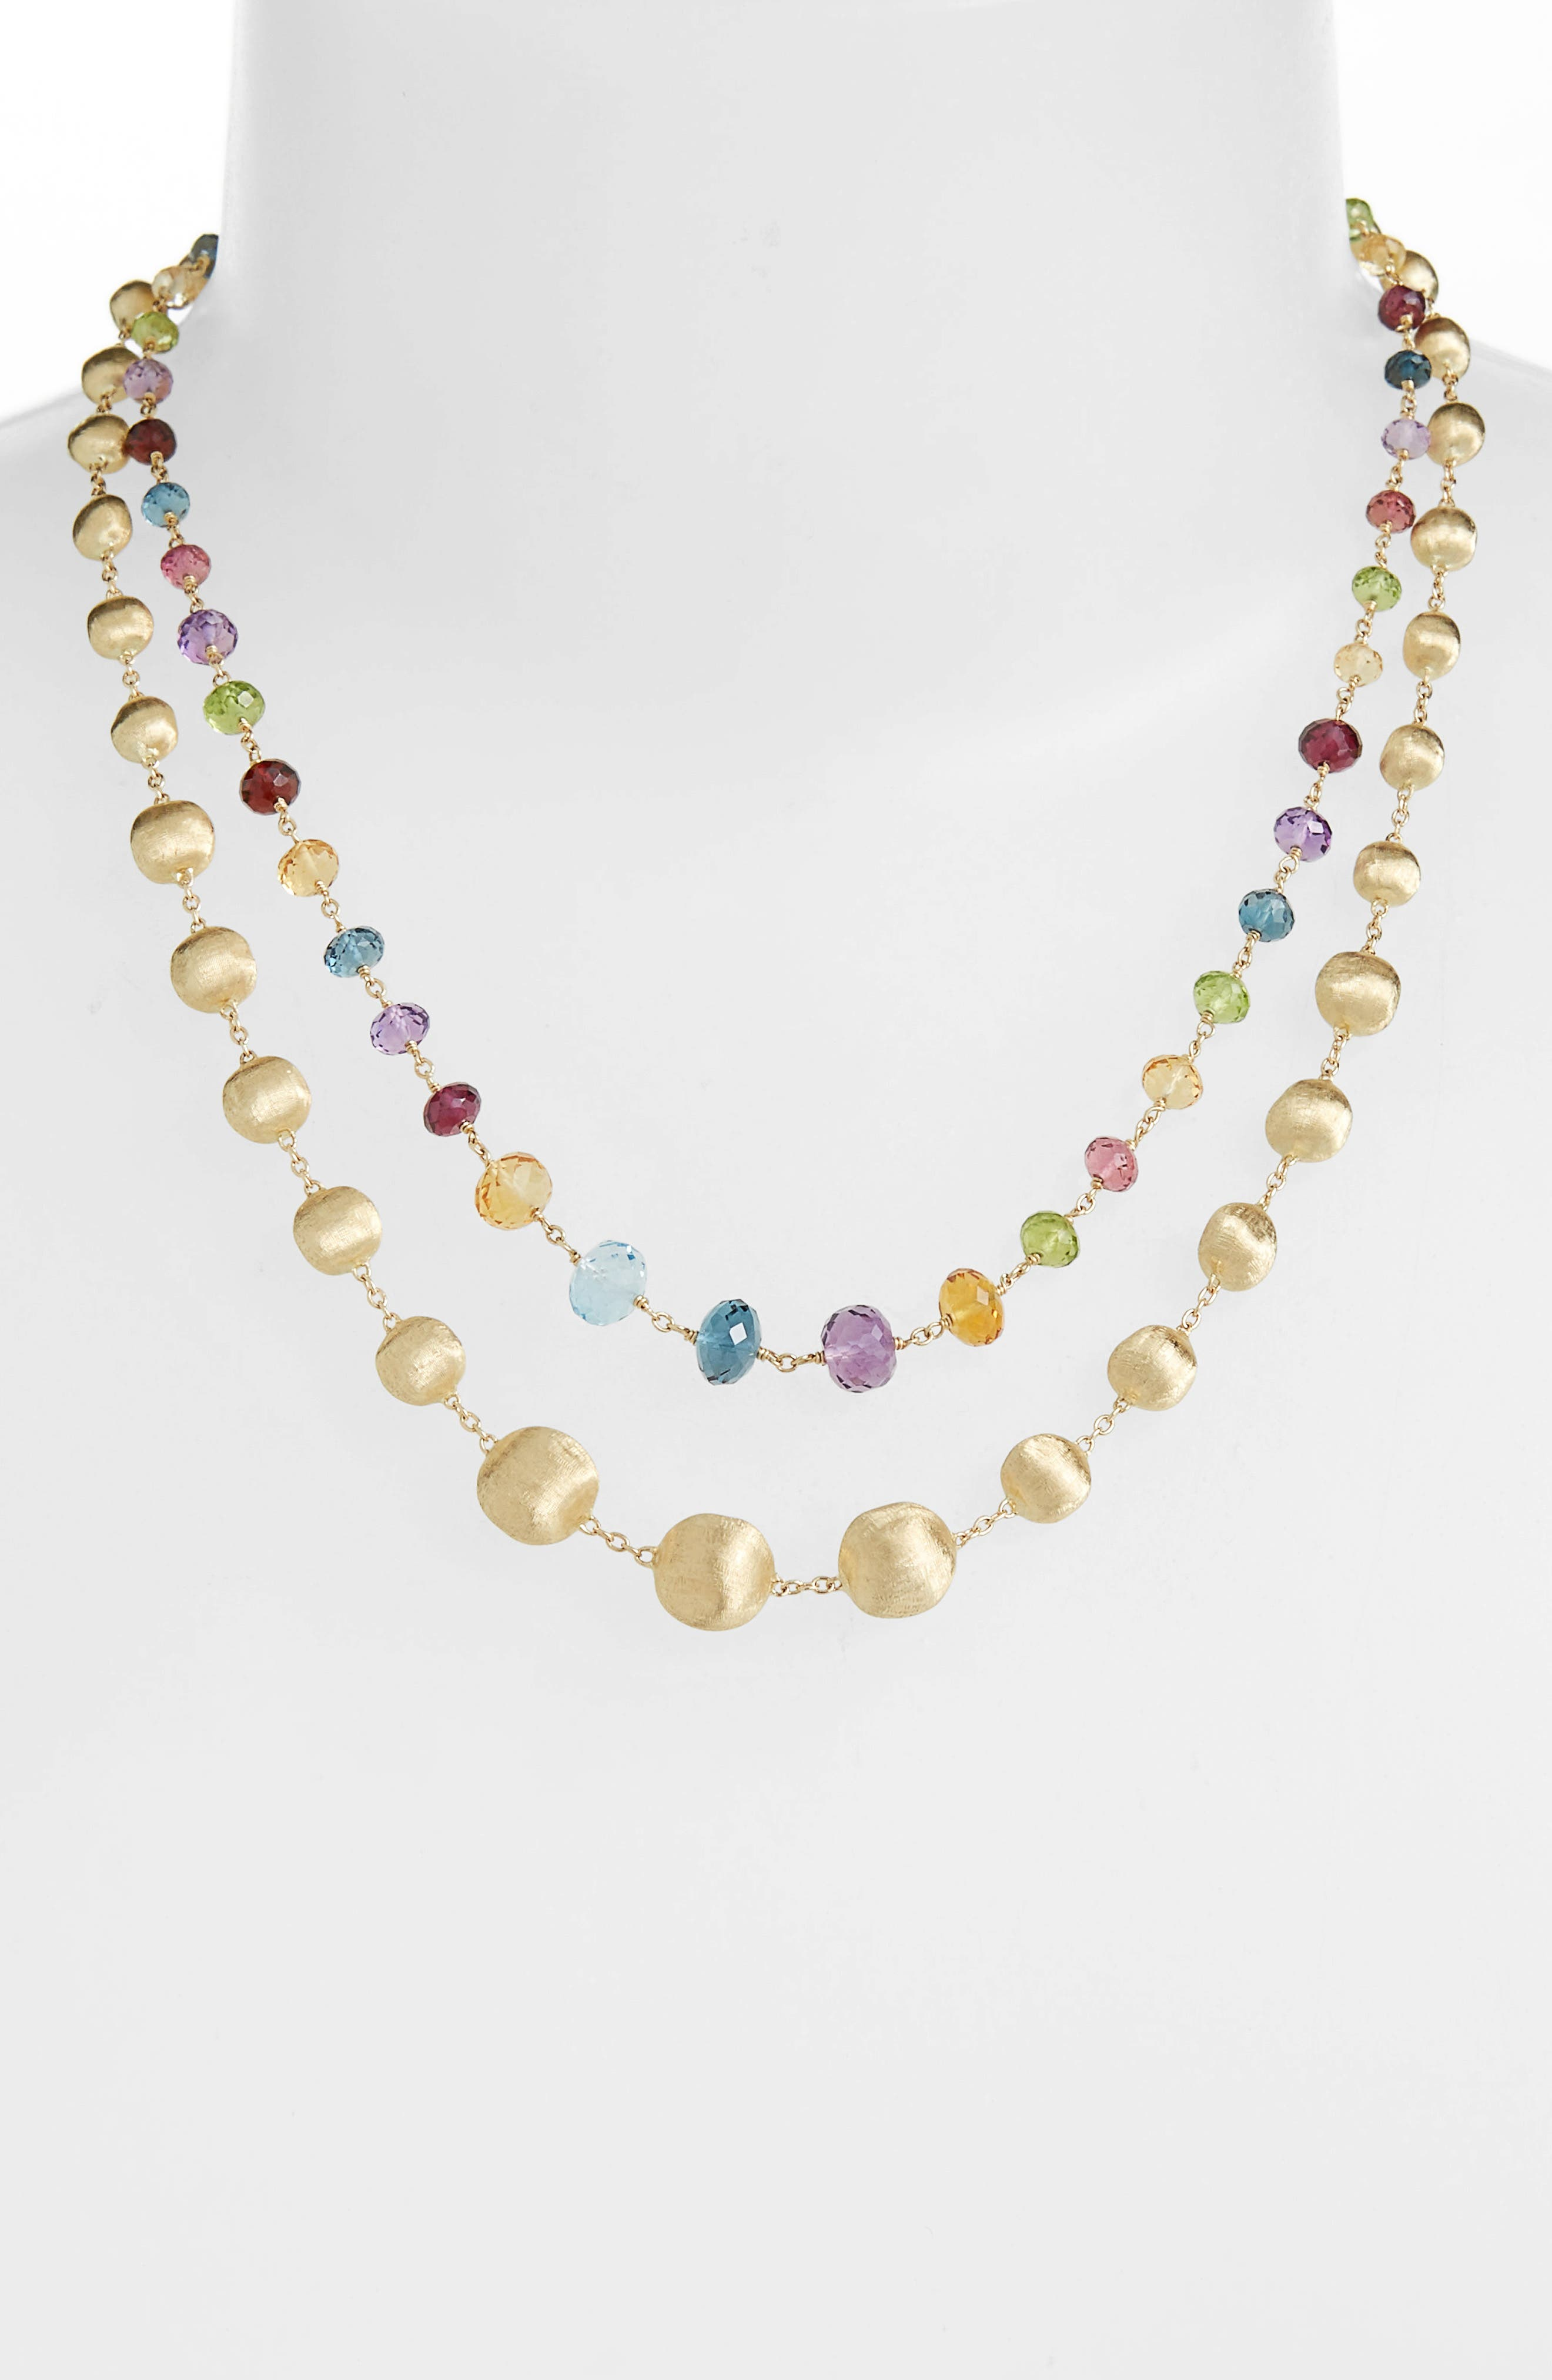 Africa Semiprecious Stone Long Strand Necklace,                             Alternate thumbnail 2, color,                             YELLOW GOLD